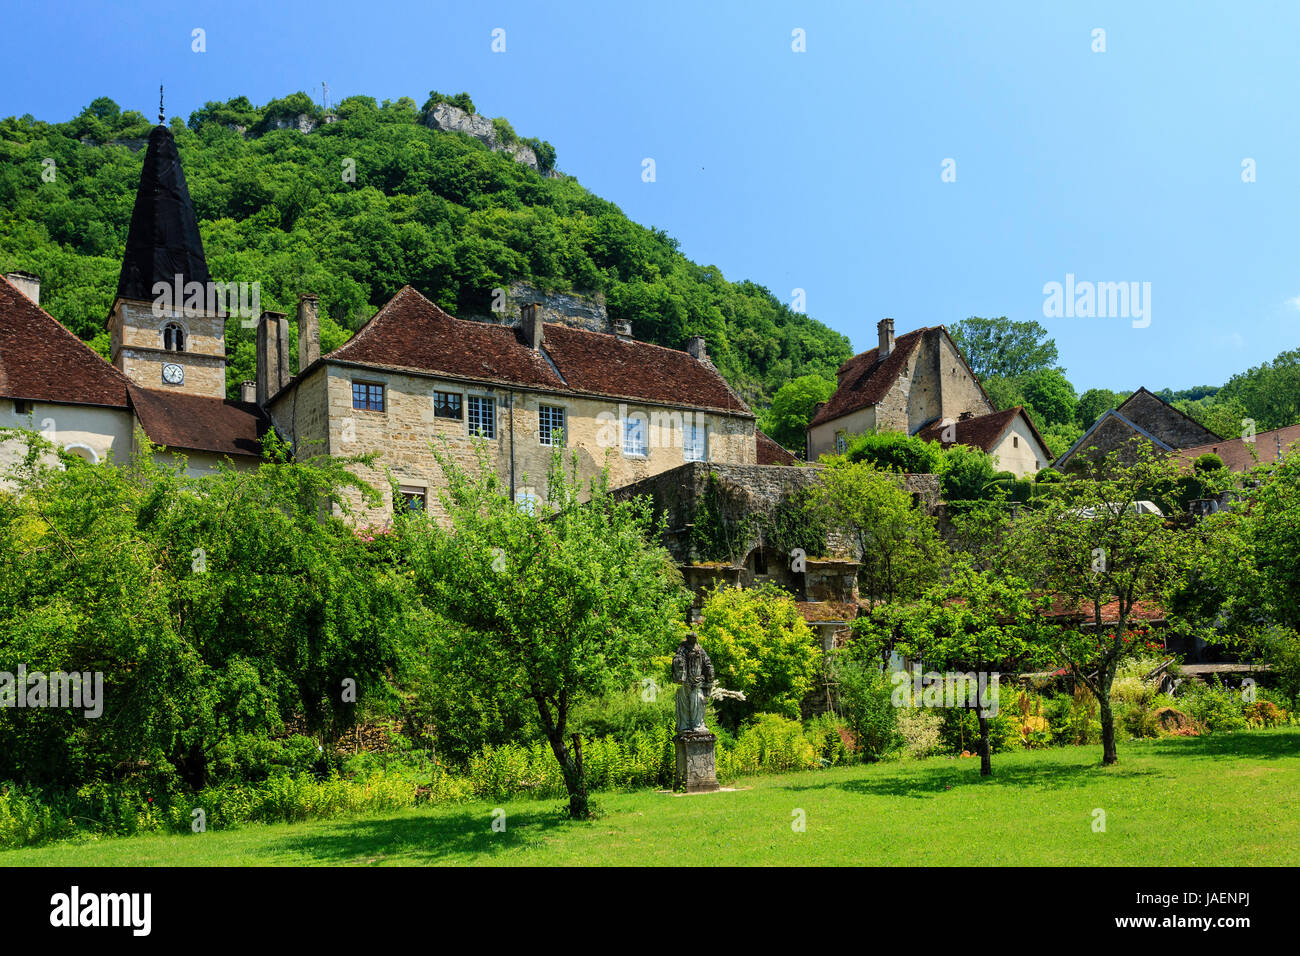 France, Jura, Baume les Messieurs, labelled Les Plus Beaux Villages de France (The Most beautiful Villages of France) - Stock Image